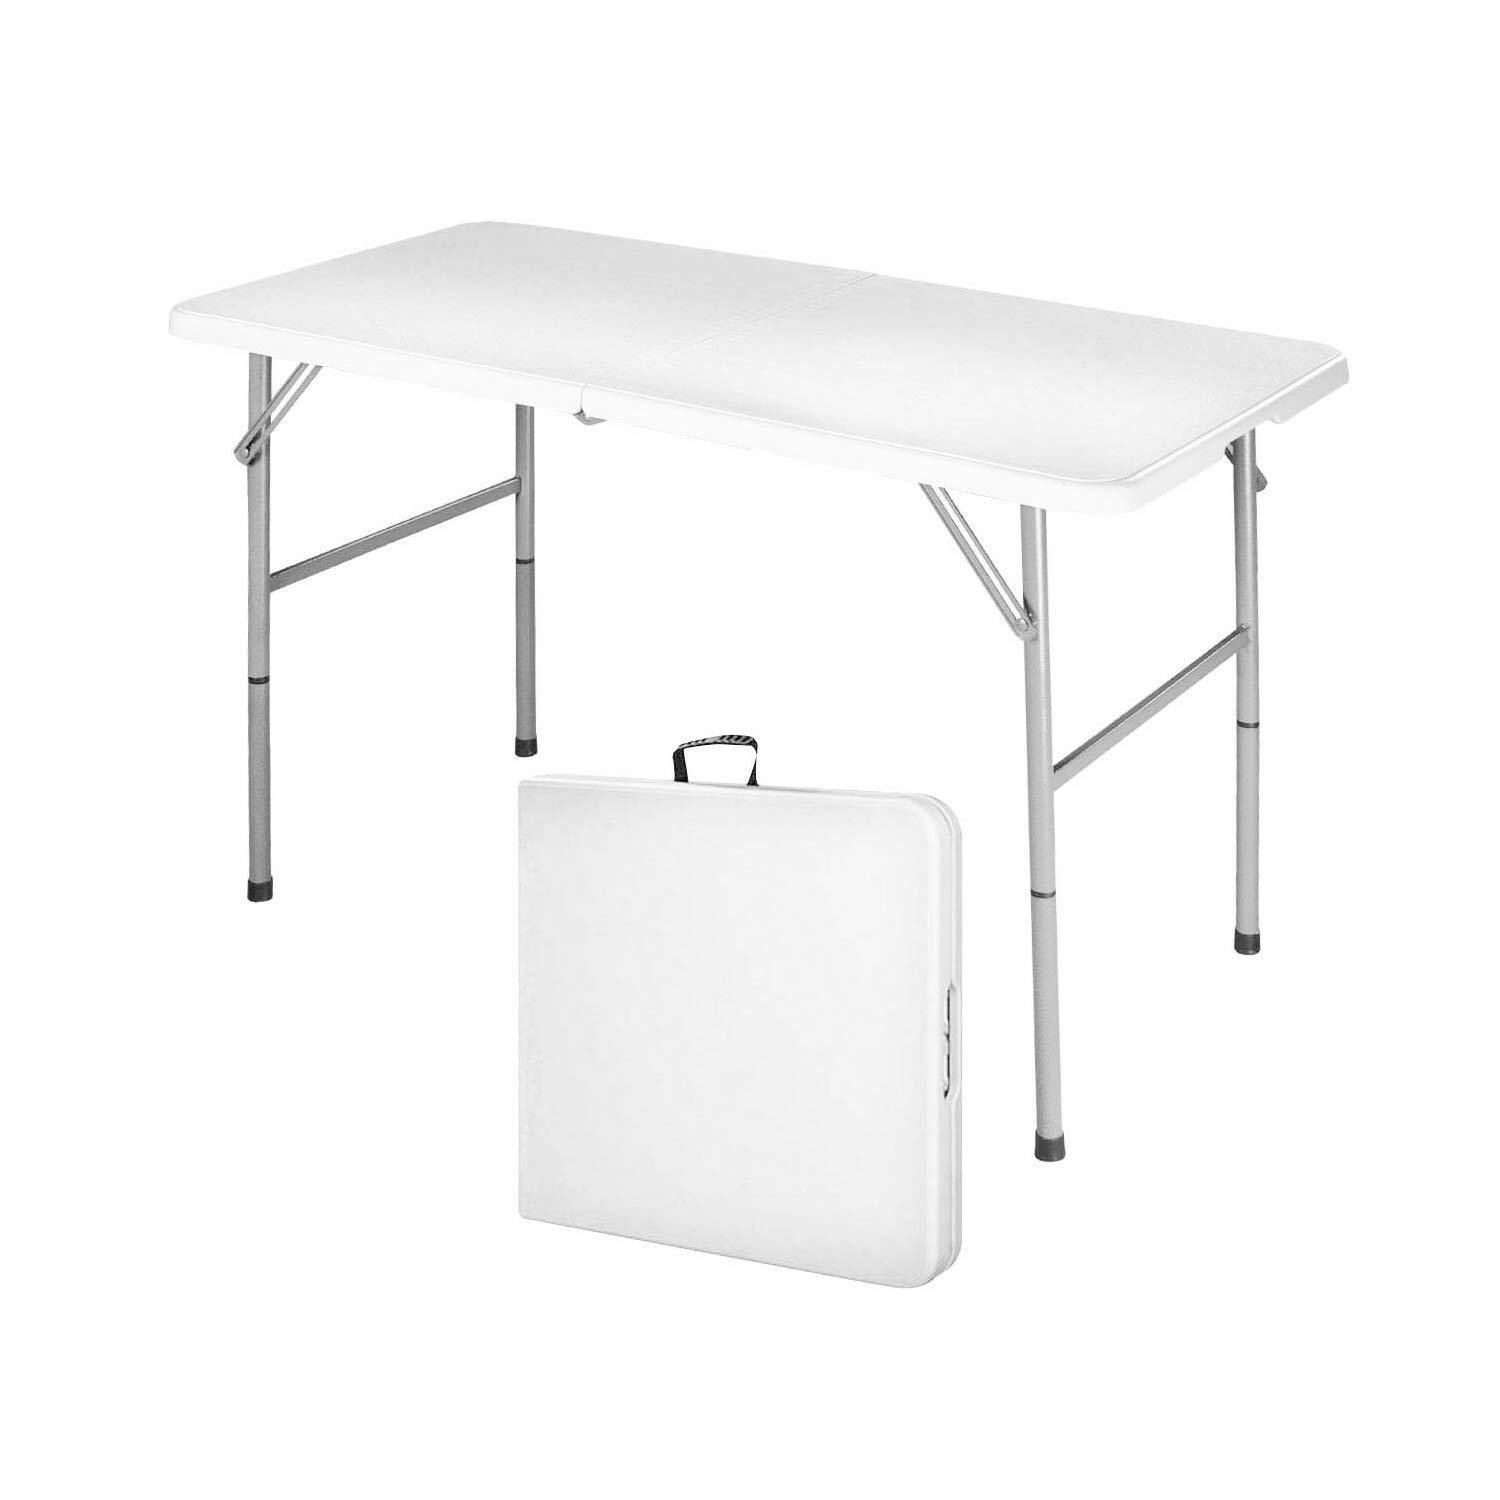 Modern-Depo 4ft Portable Folding HDPE Dining Table for Backyard, Picnic, Party, Camp w/Handle, Lock, Non-Slip Rubber Feet, Steel Legs,Powder Coated Iron Frame